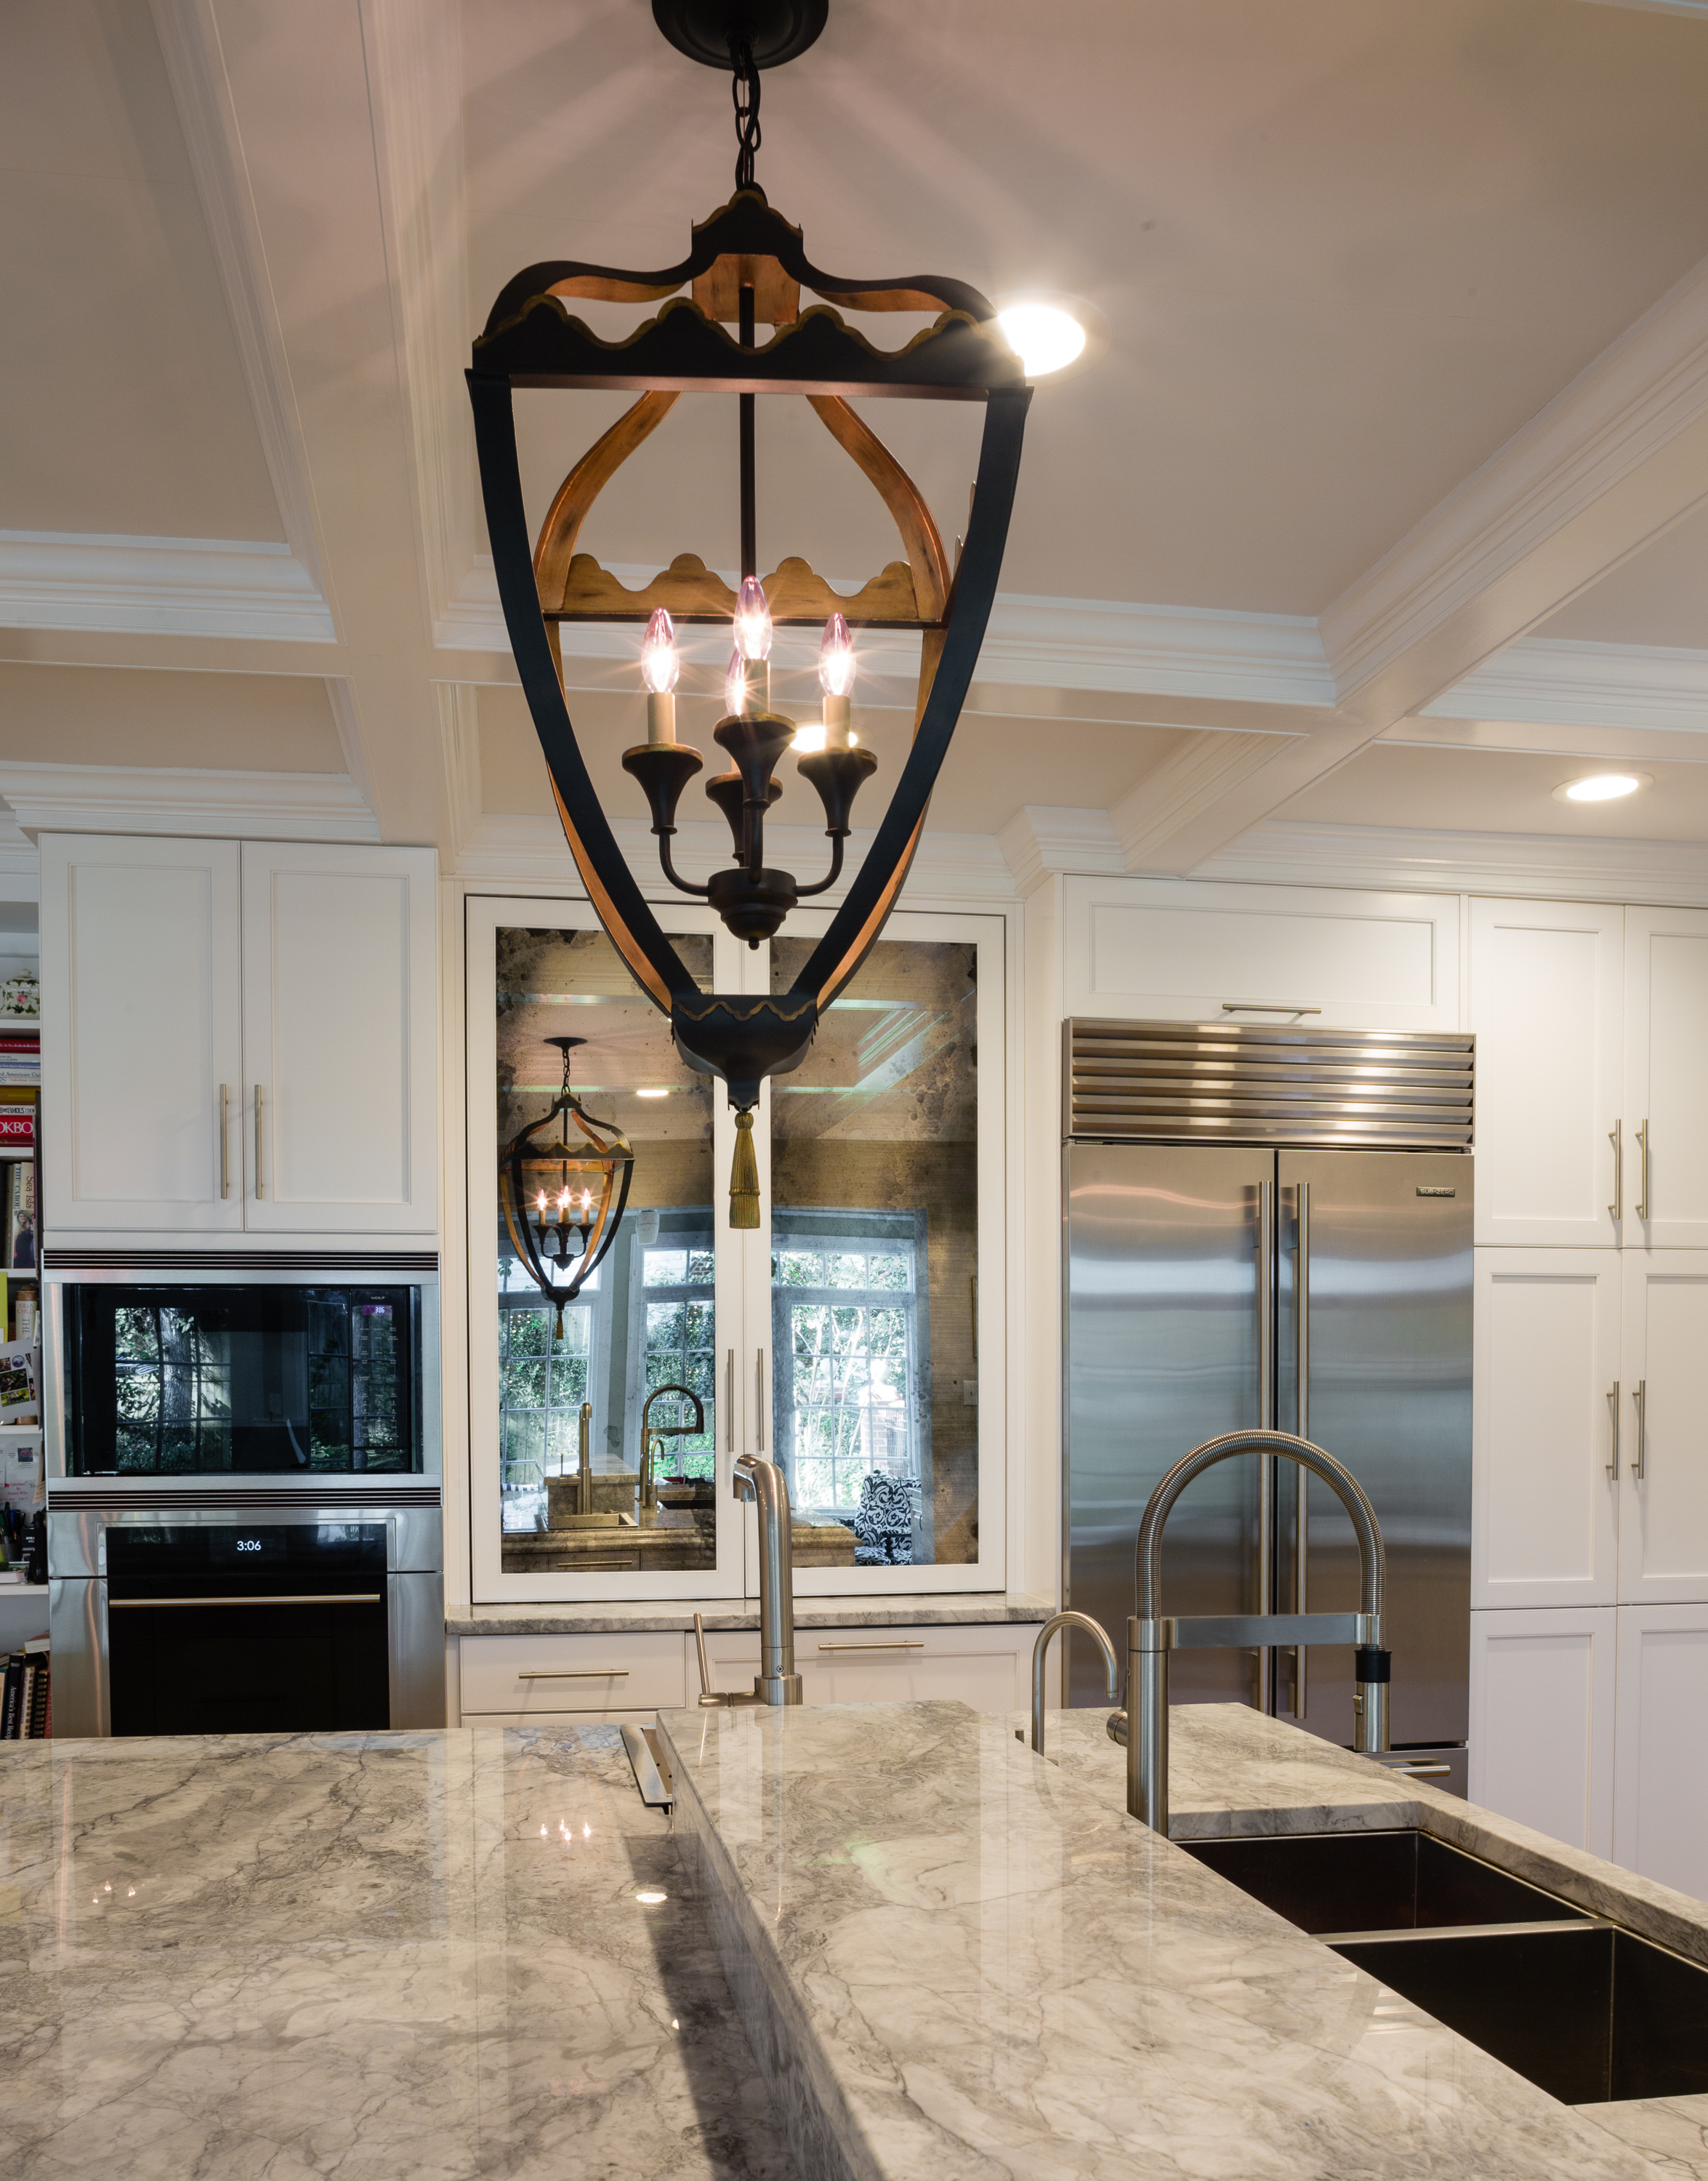 Arnett Kitchen Light Detail.jpg